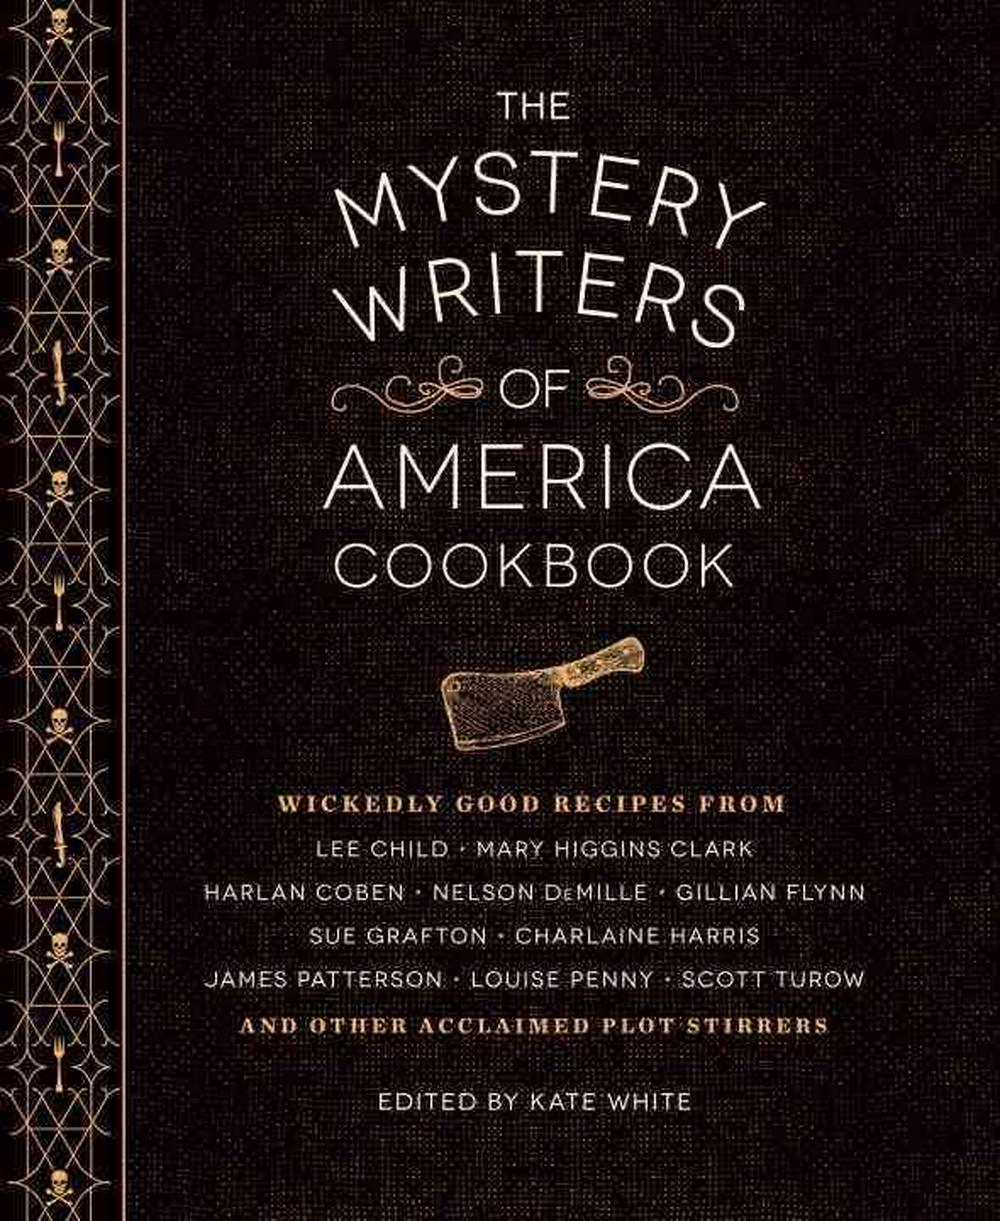 The Mystery Writers of America Cookbook by Kate White, ISBN: 9781594747571